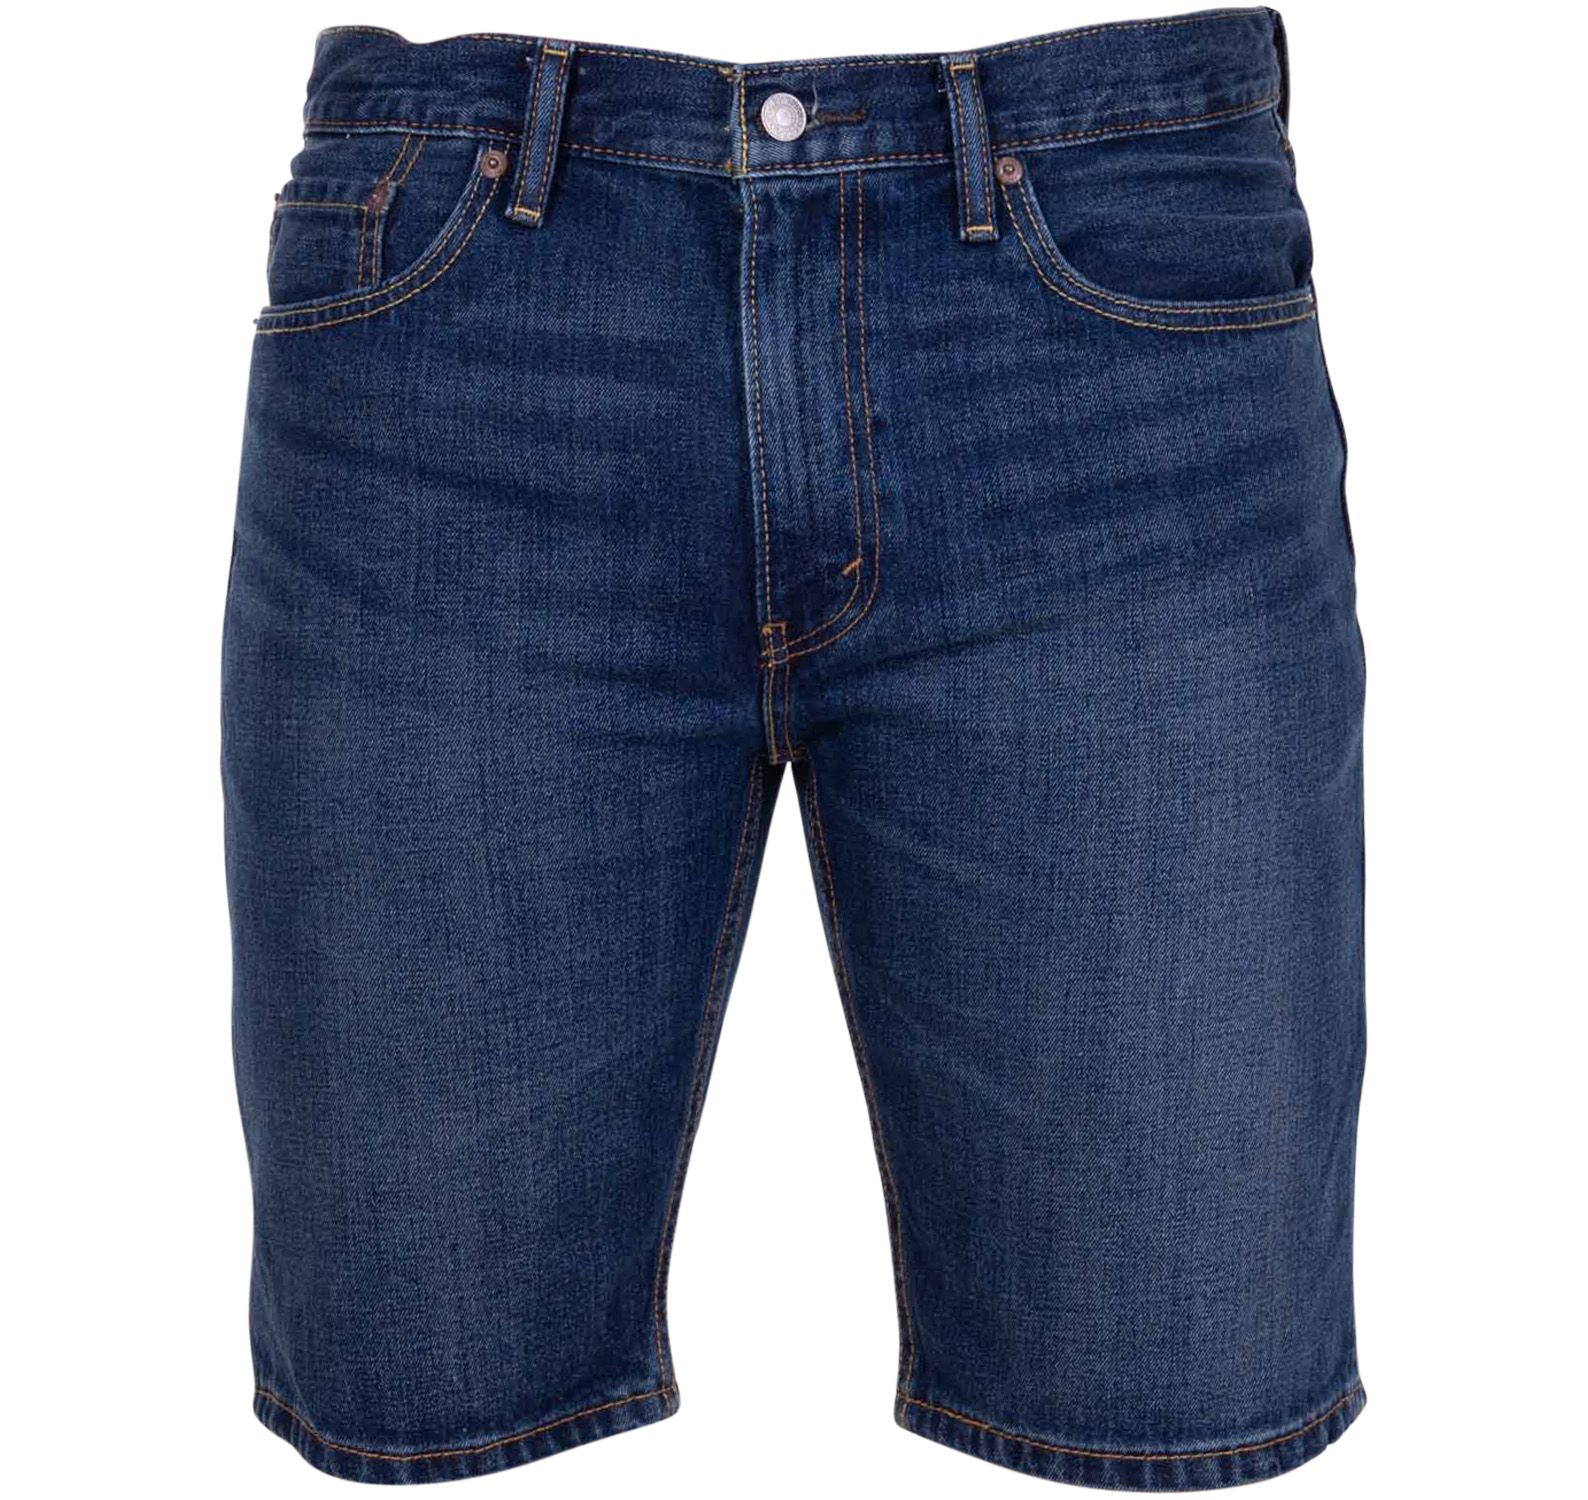 502 Taper Hemmed Short On The, Dark Indigo - Worn In, 31,  Levis